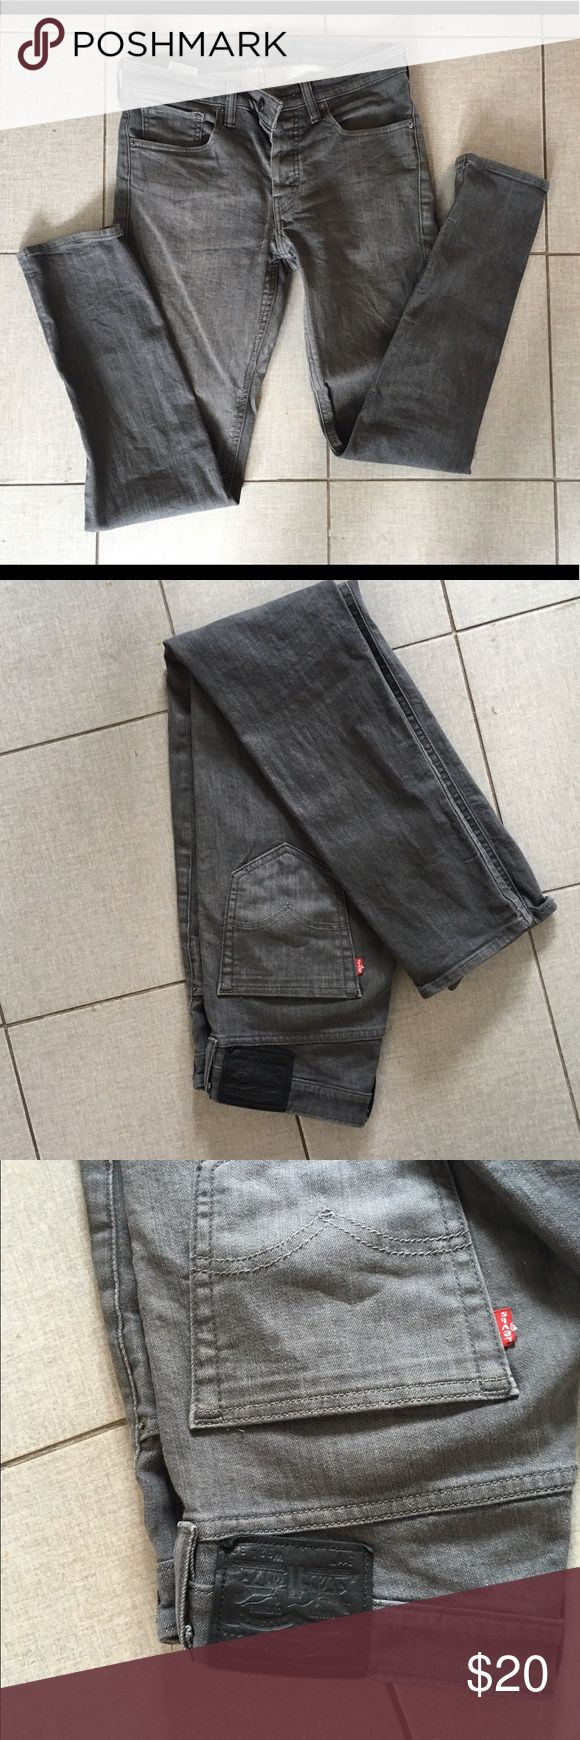 Levi's, 511 commuter gray skinny jeans Great shape Non smoking. 32 inch inseam. Good condition, non smoking, no imperfections Levi's Jeans Slim